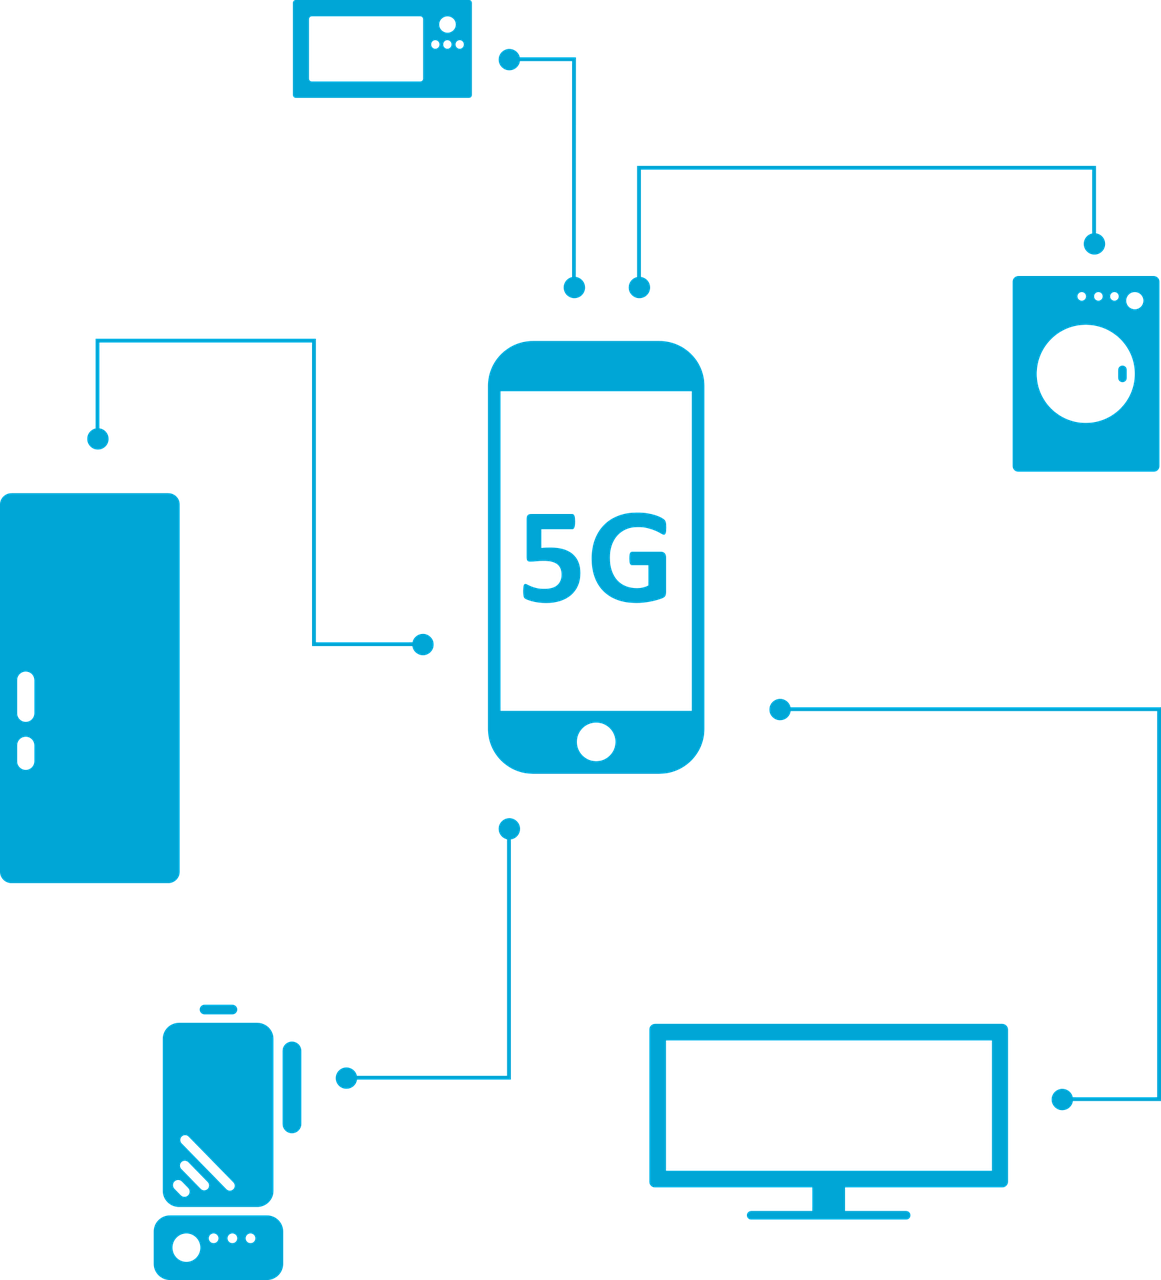 5g-smartphone.png